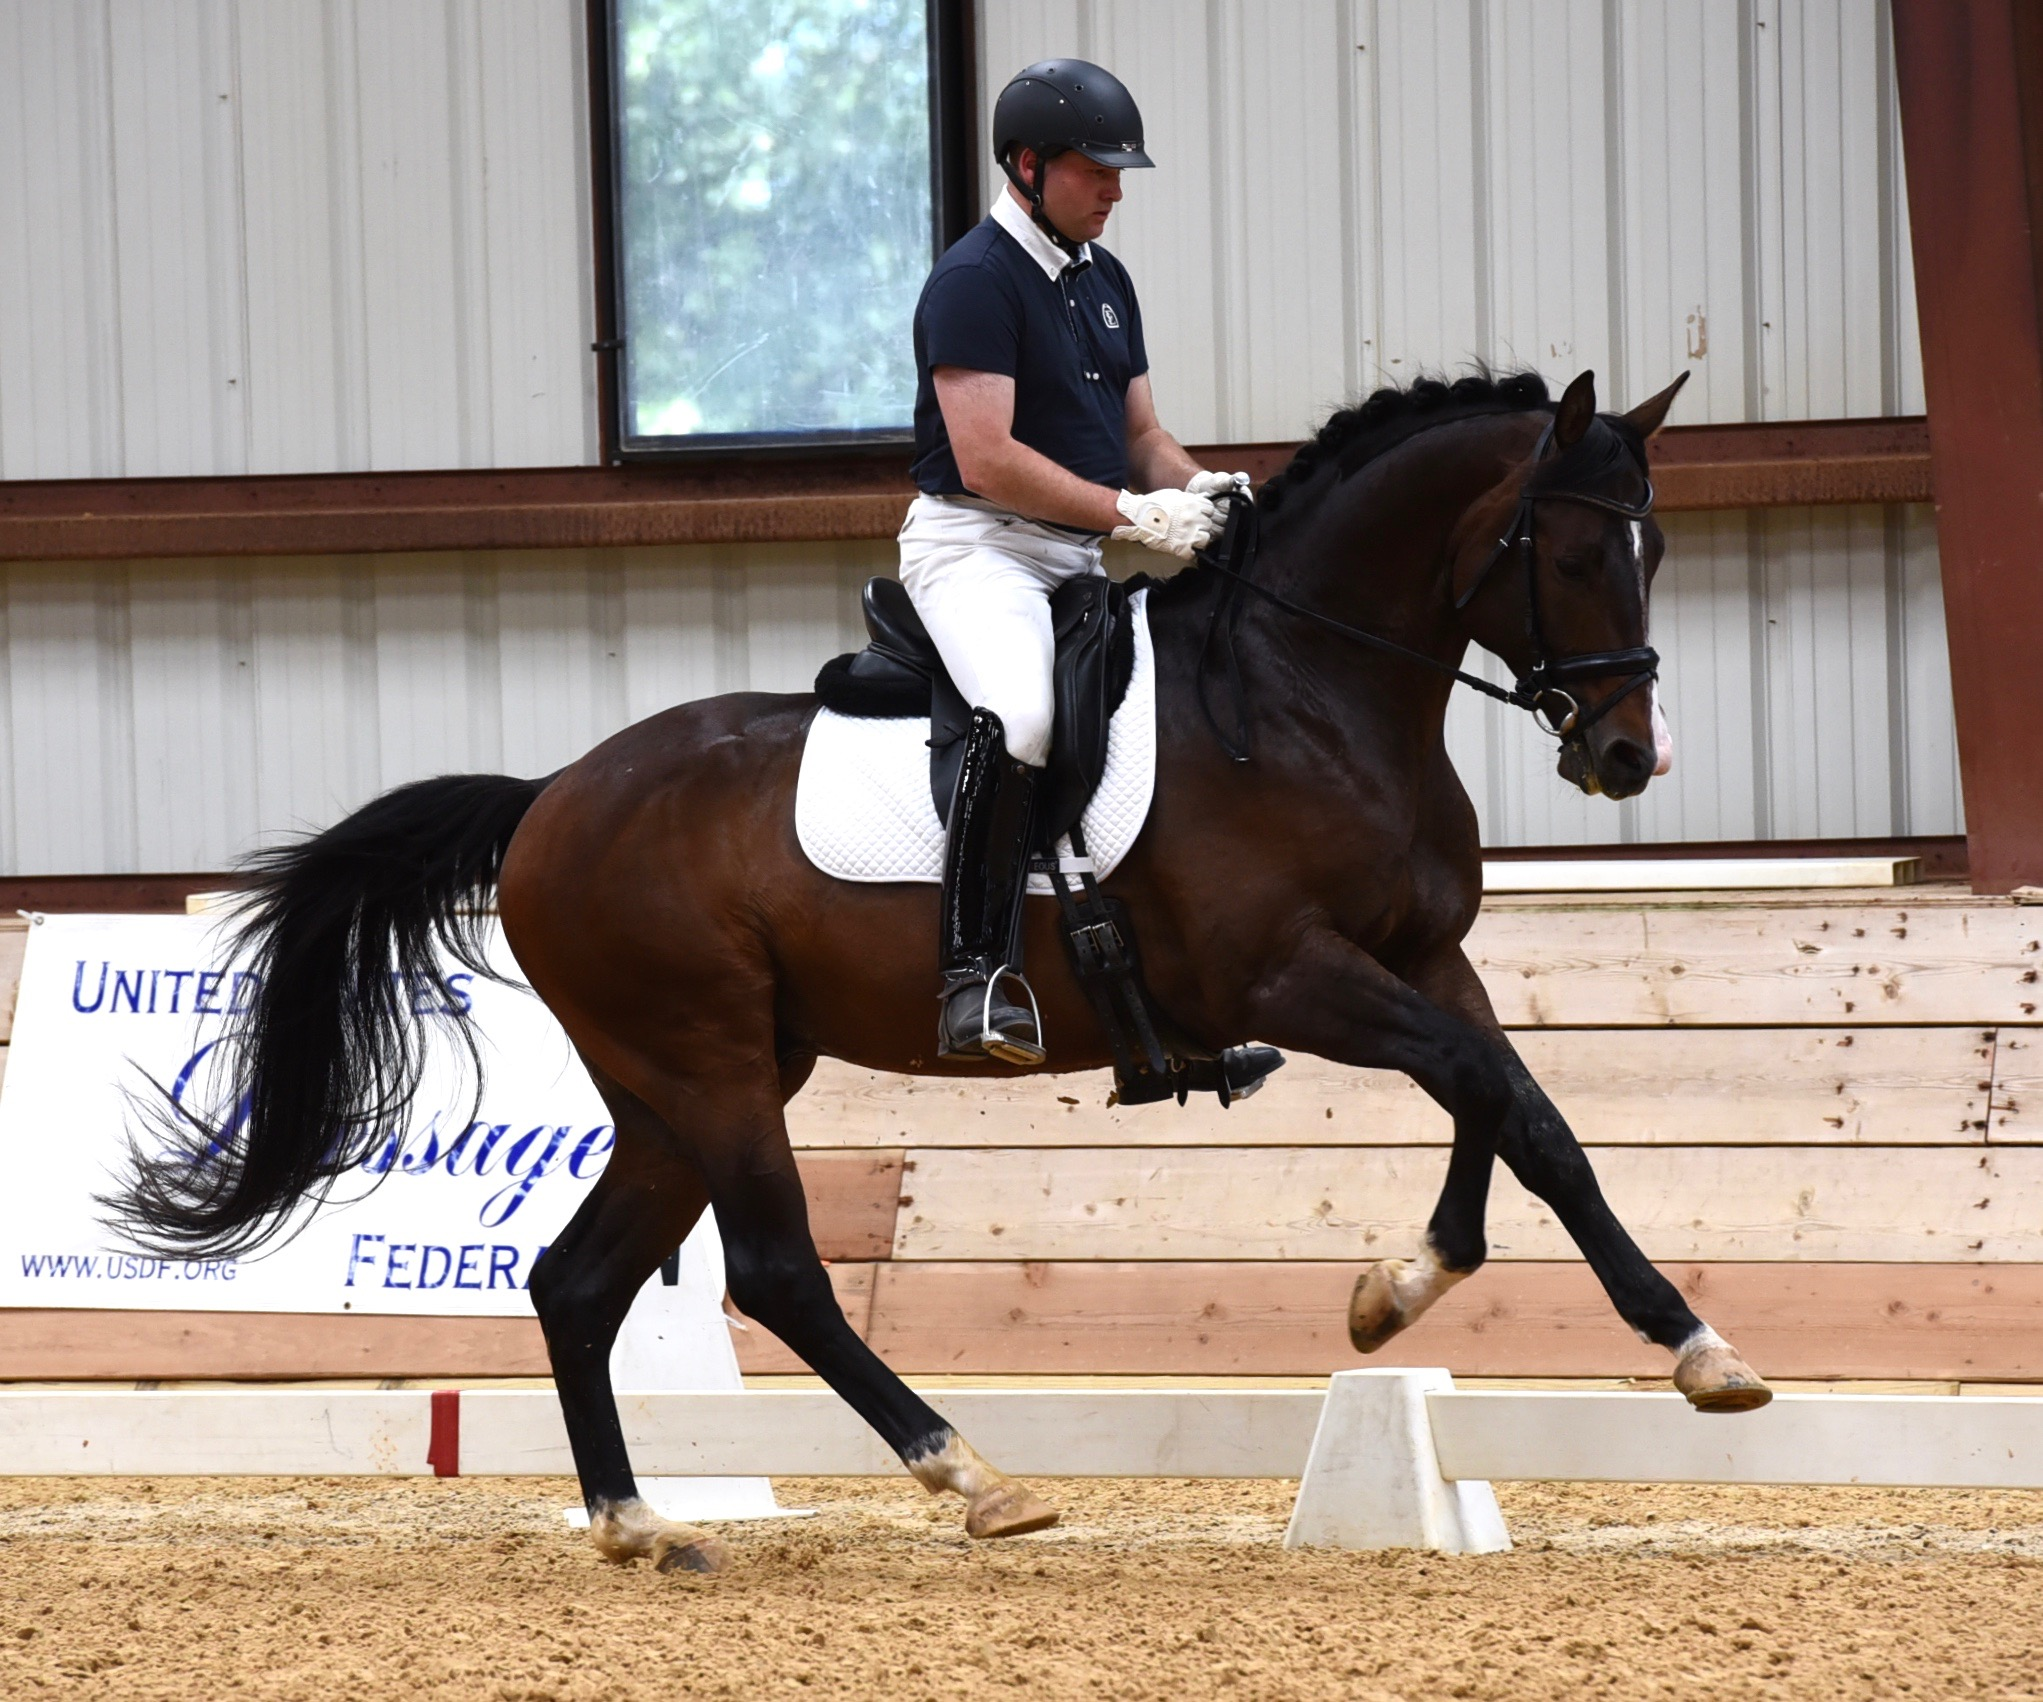 Artie-Dressage at Morven Park, 2016